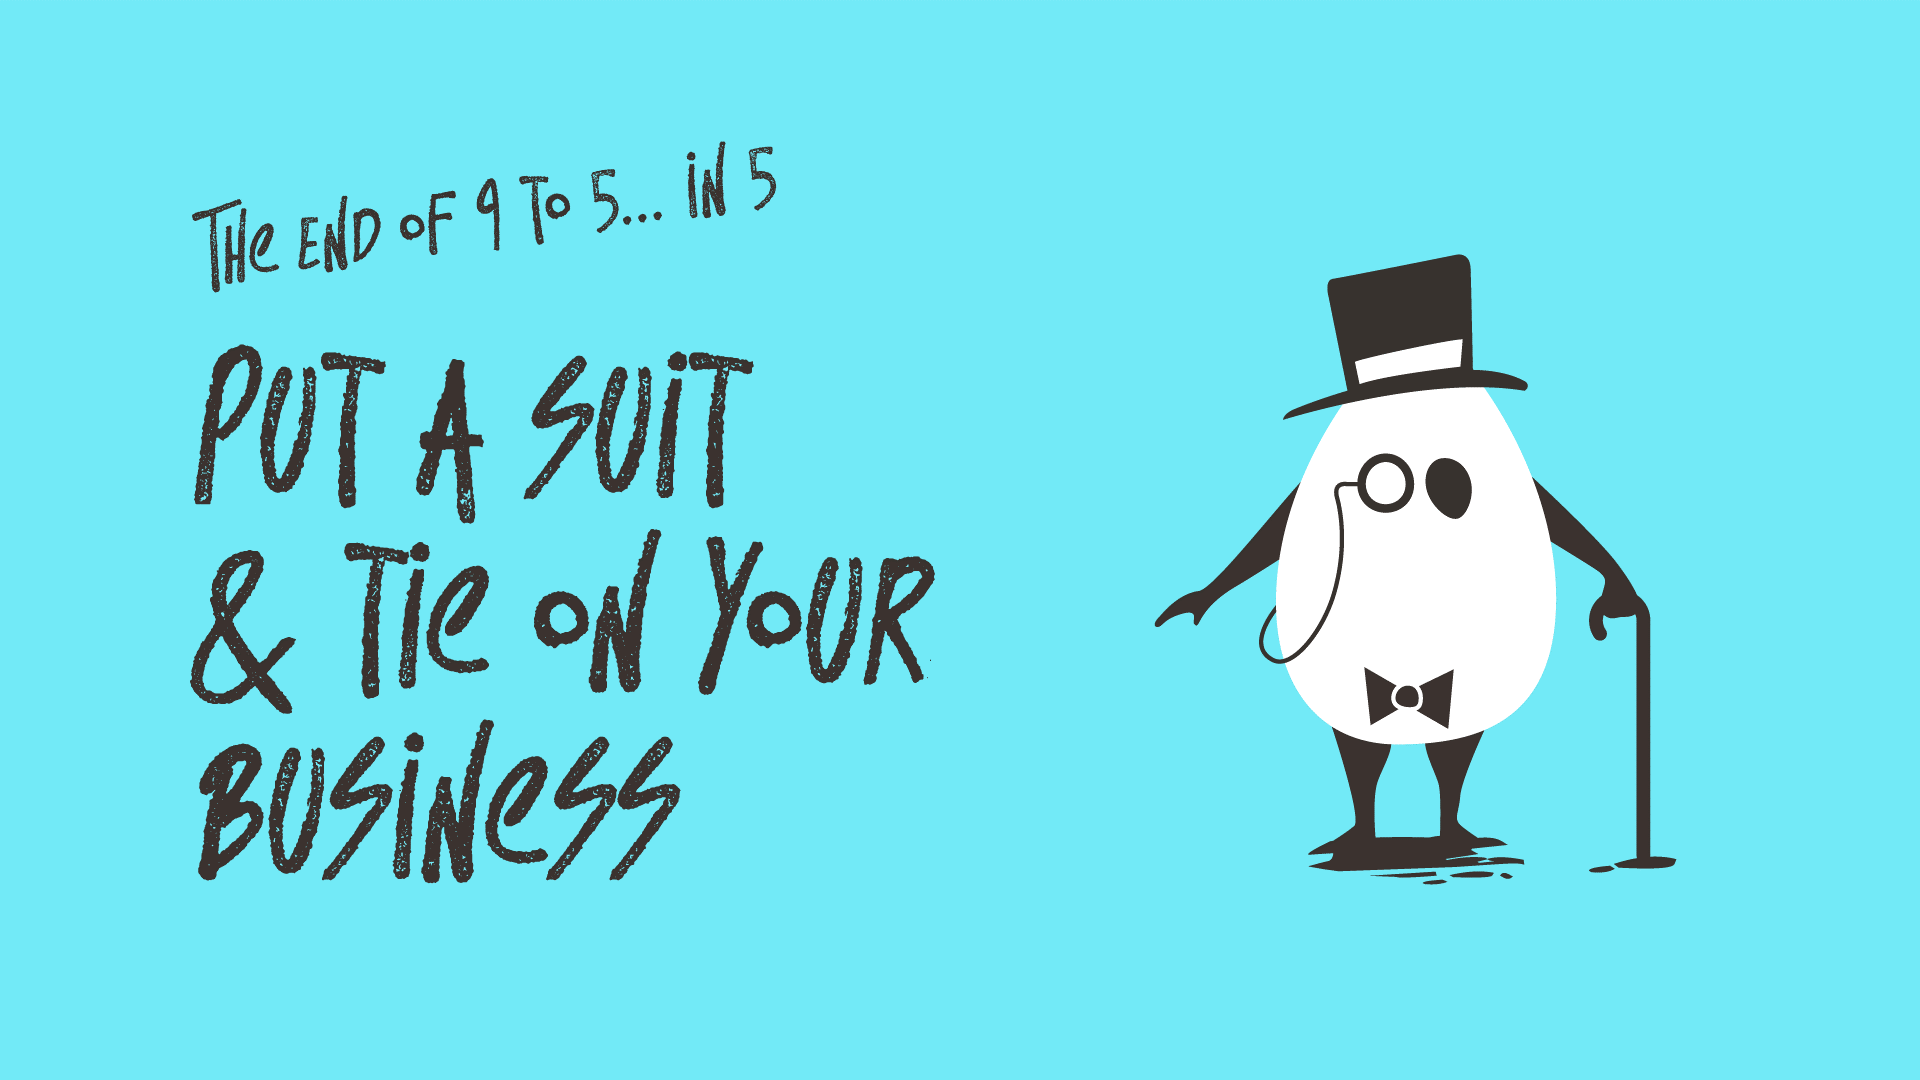 Put a Suit & Tie on your business